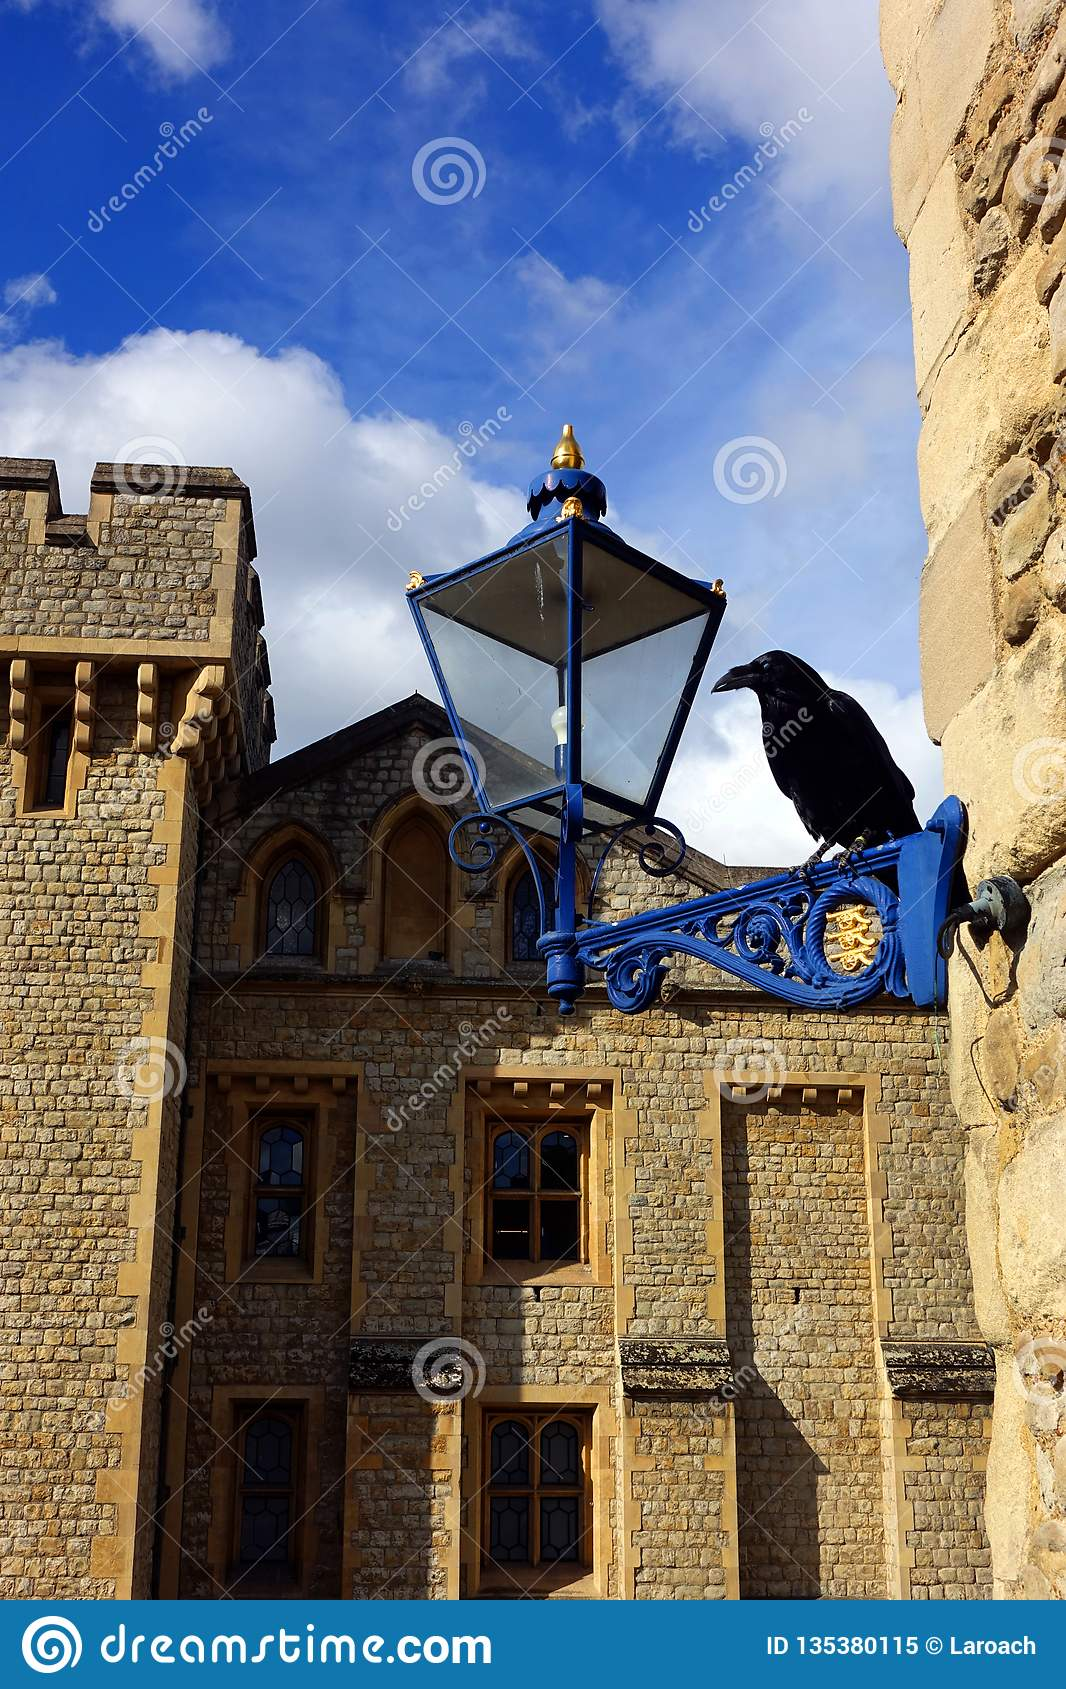 Black Raven of the Tower of London with Waterloo Block Pictured Behind